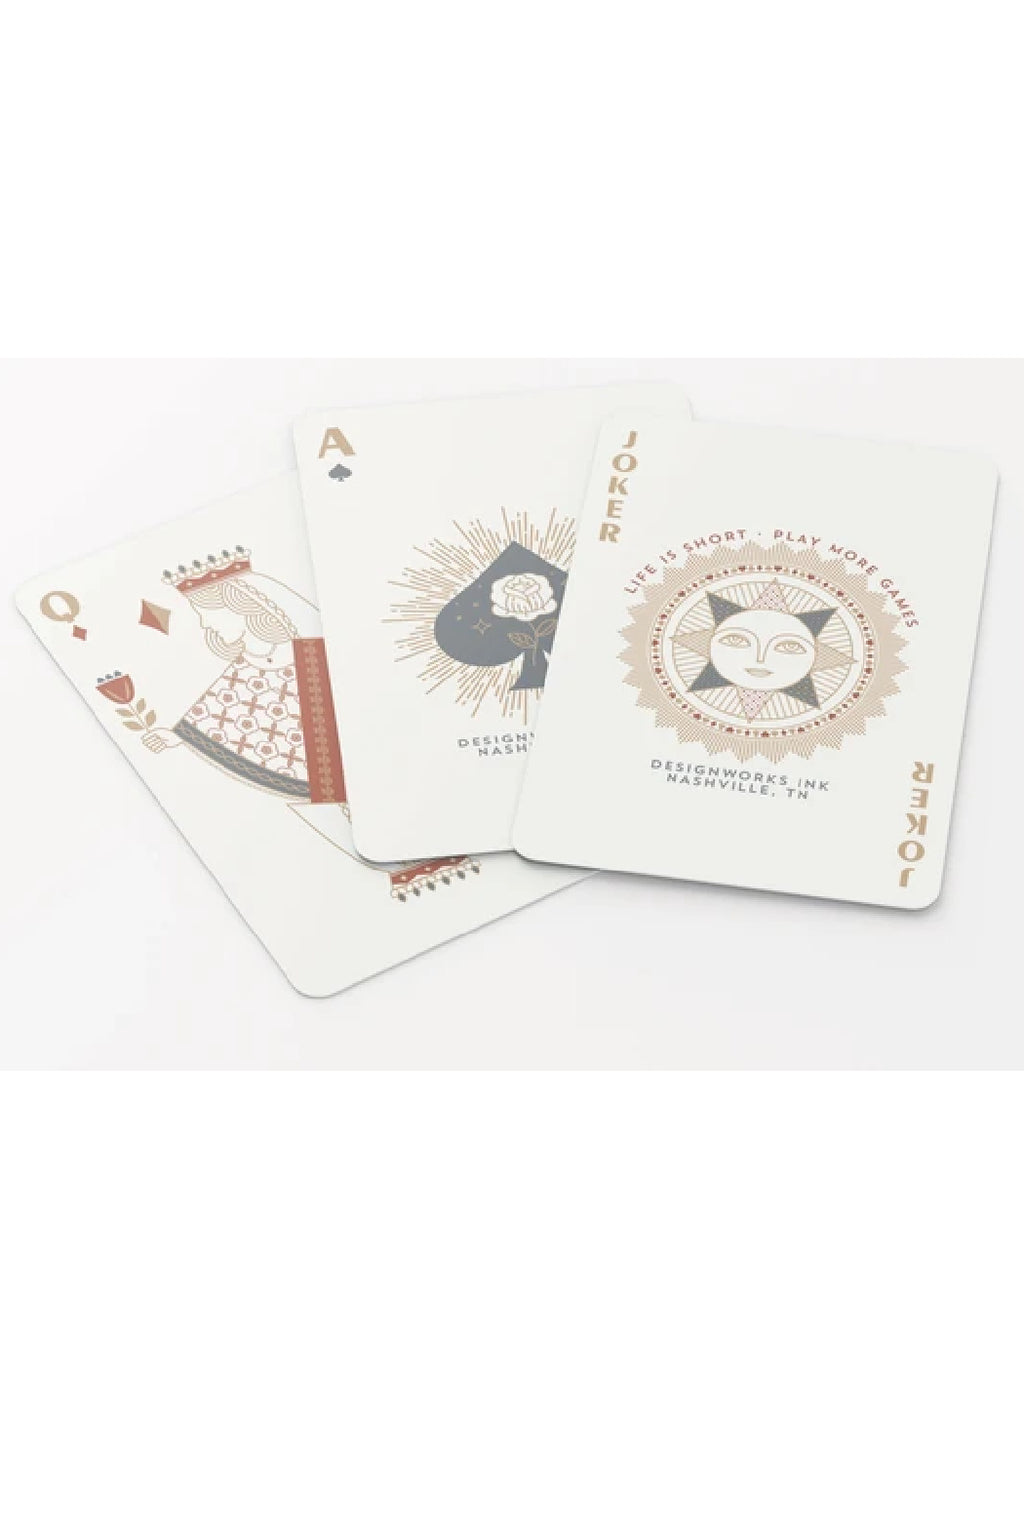 Designworks Modern Deco Playing Cards